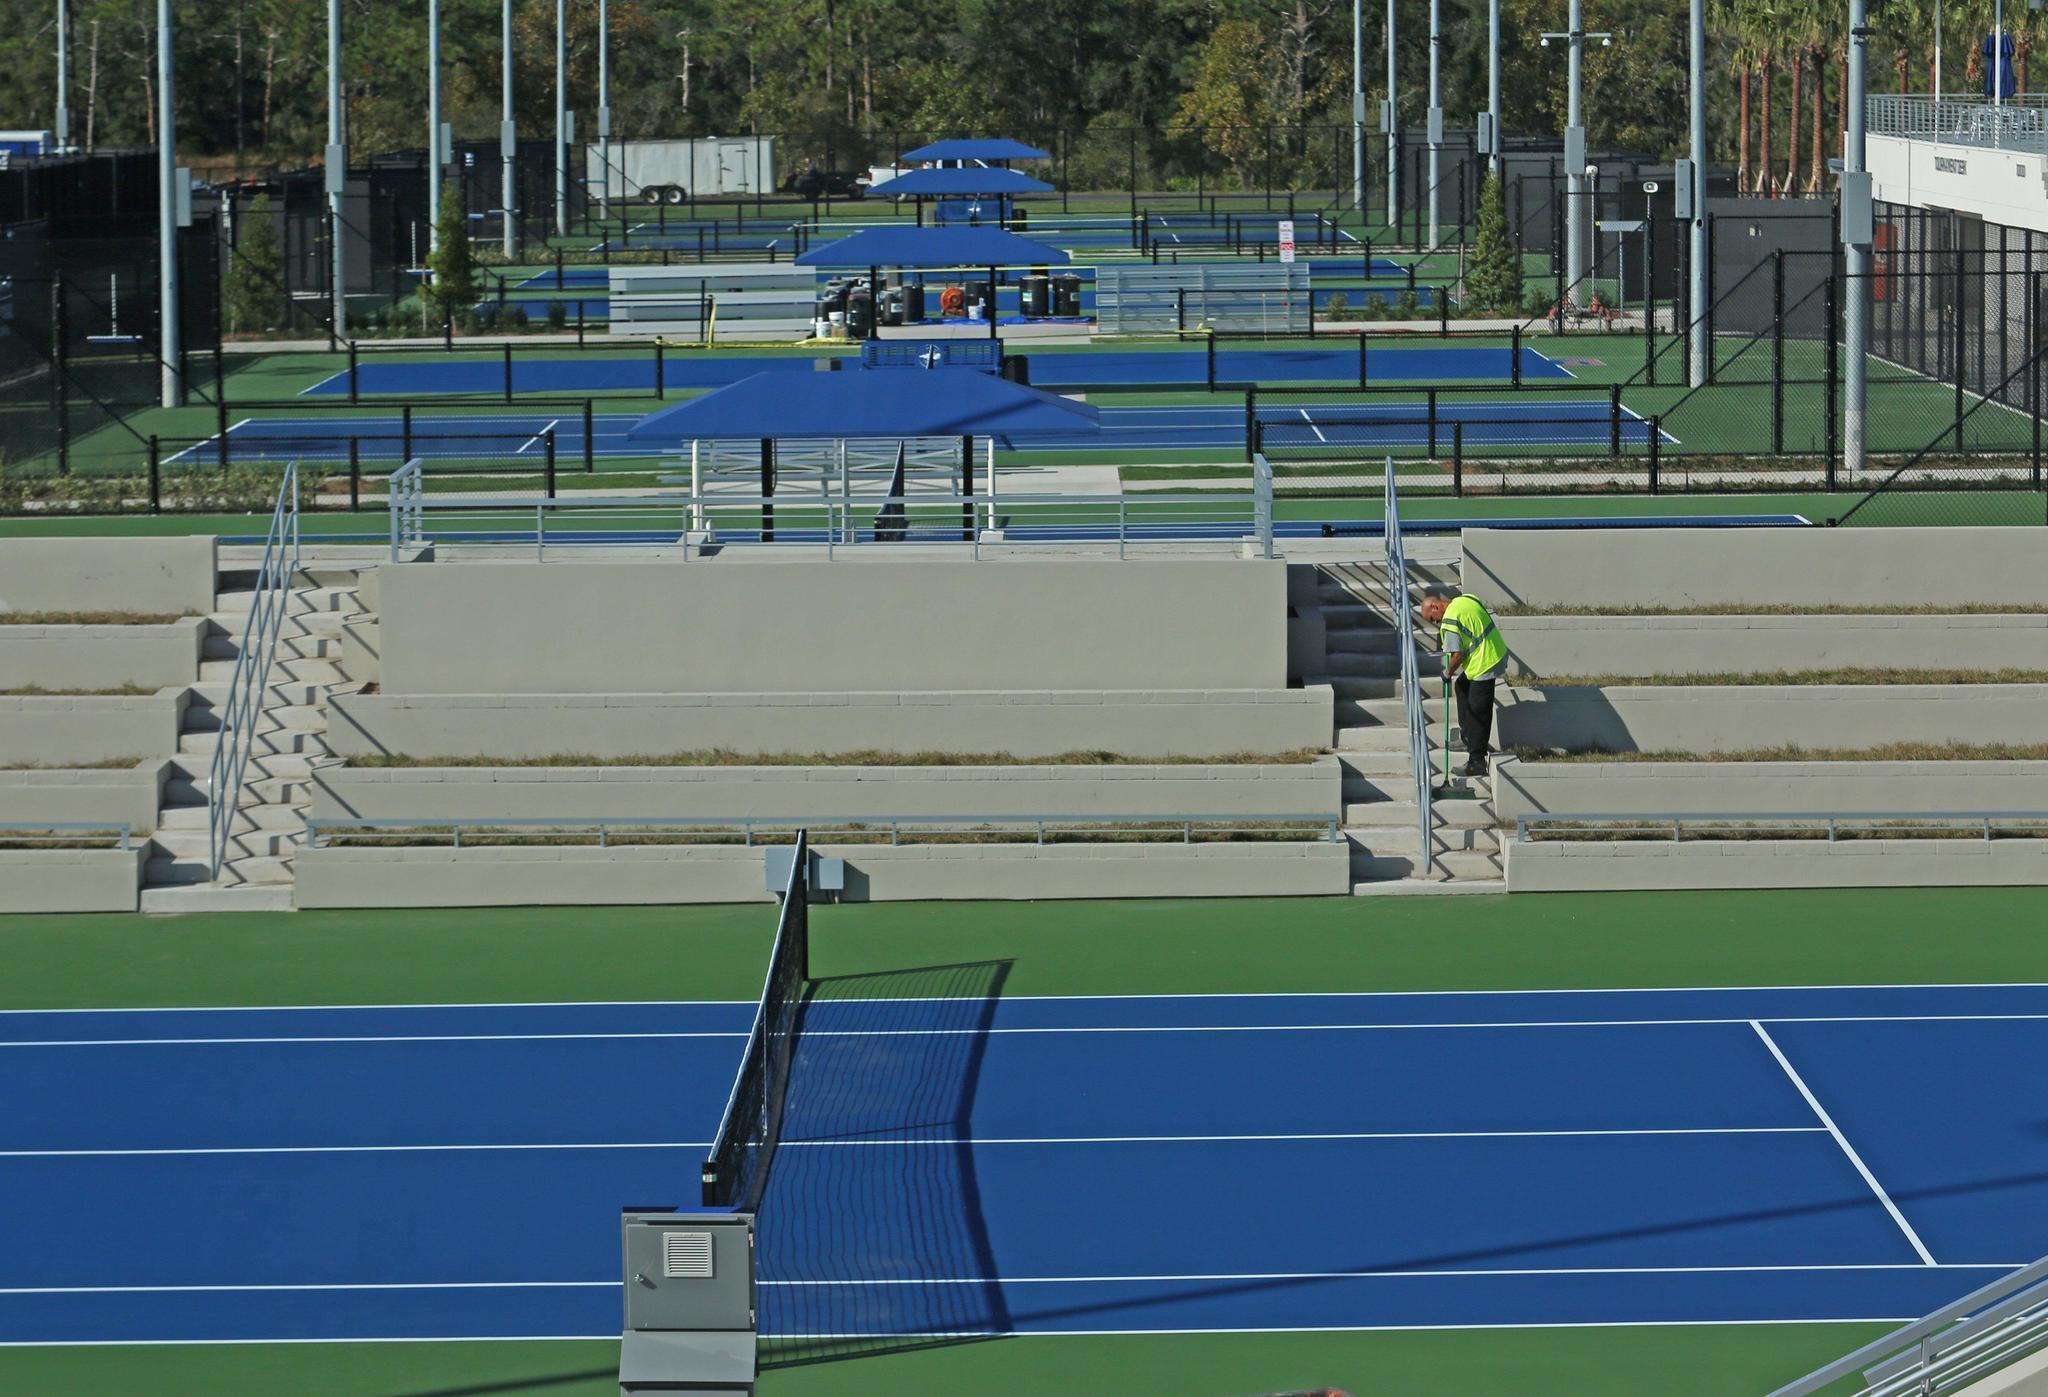 Top 5 Places for Orlando Tennis Lessons